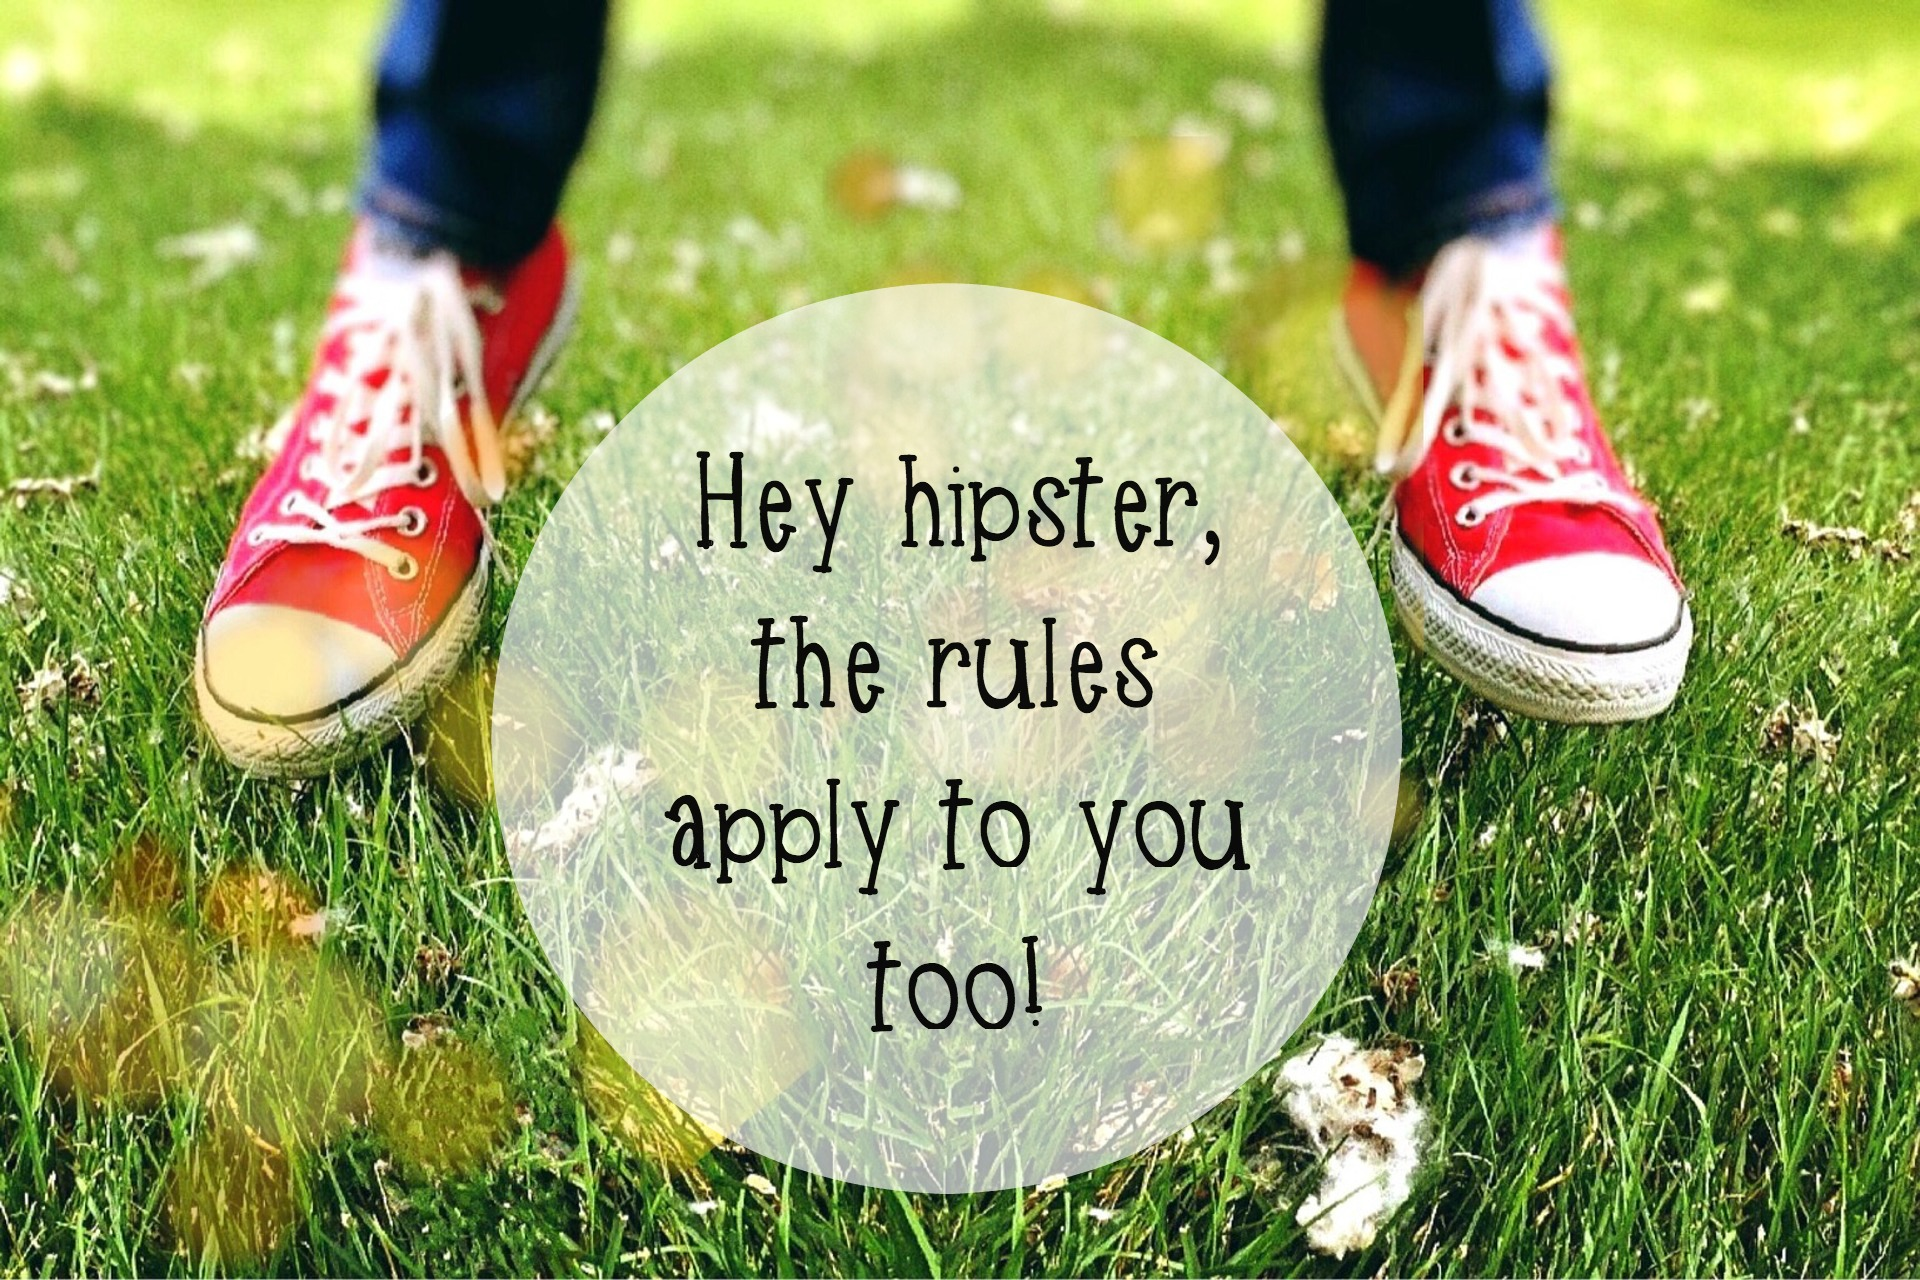 hey hipster, the rules apply to you too